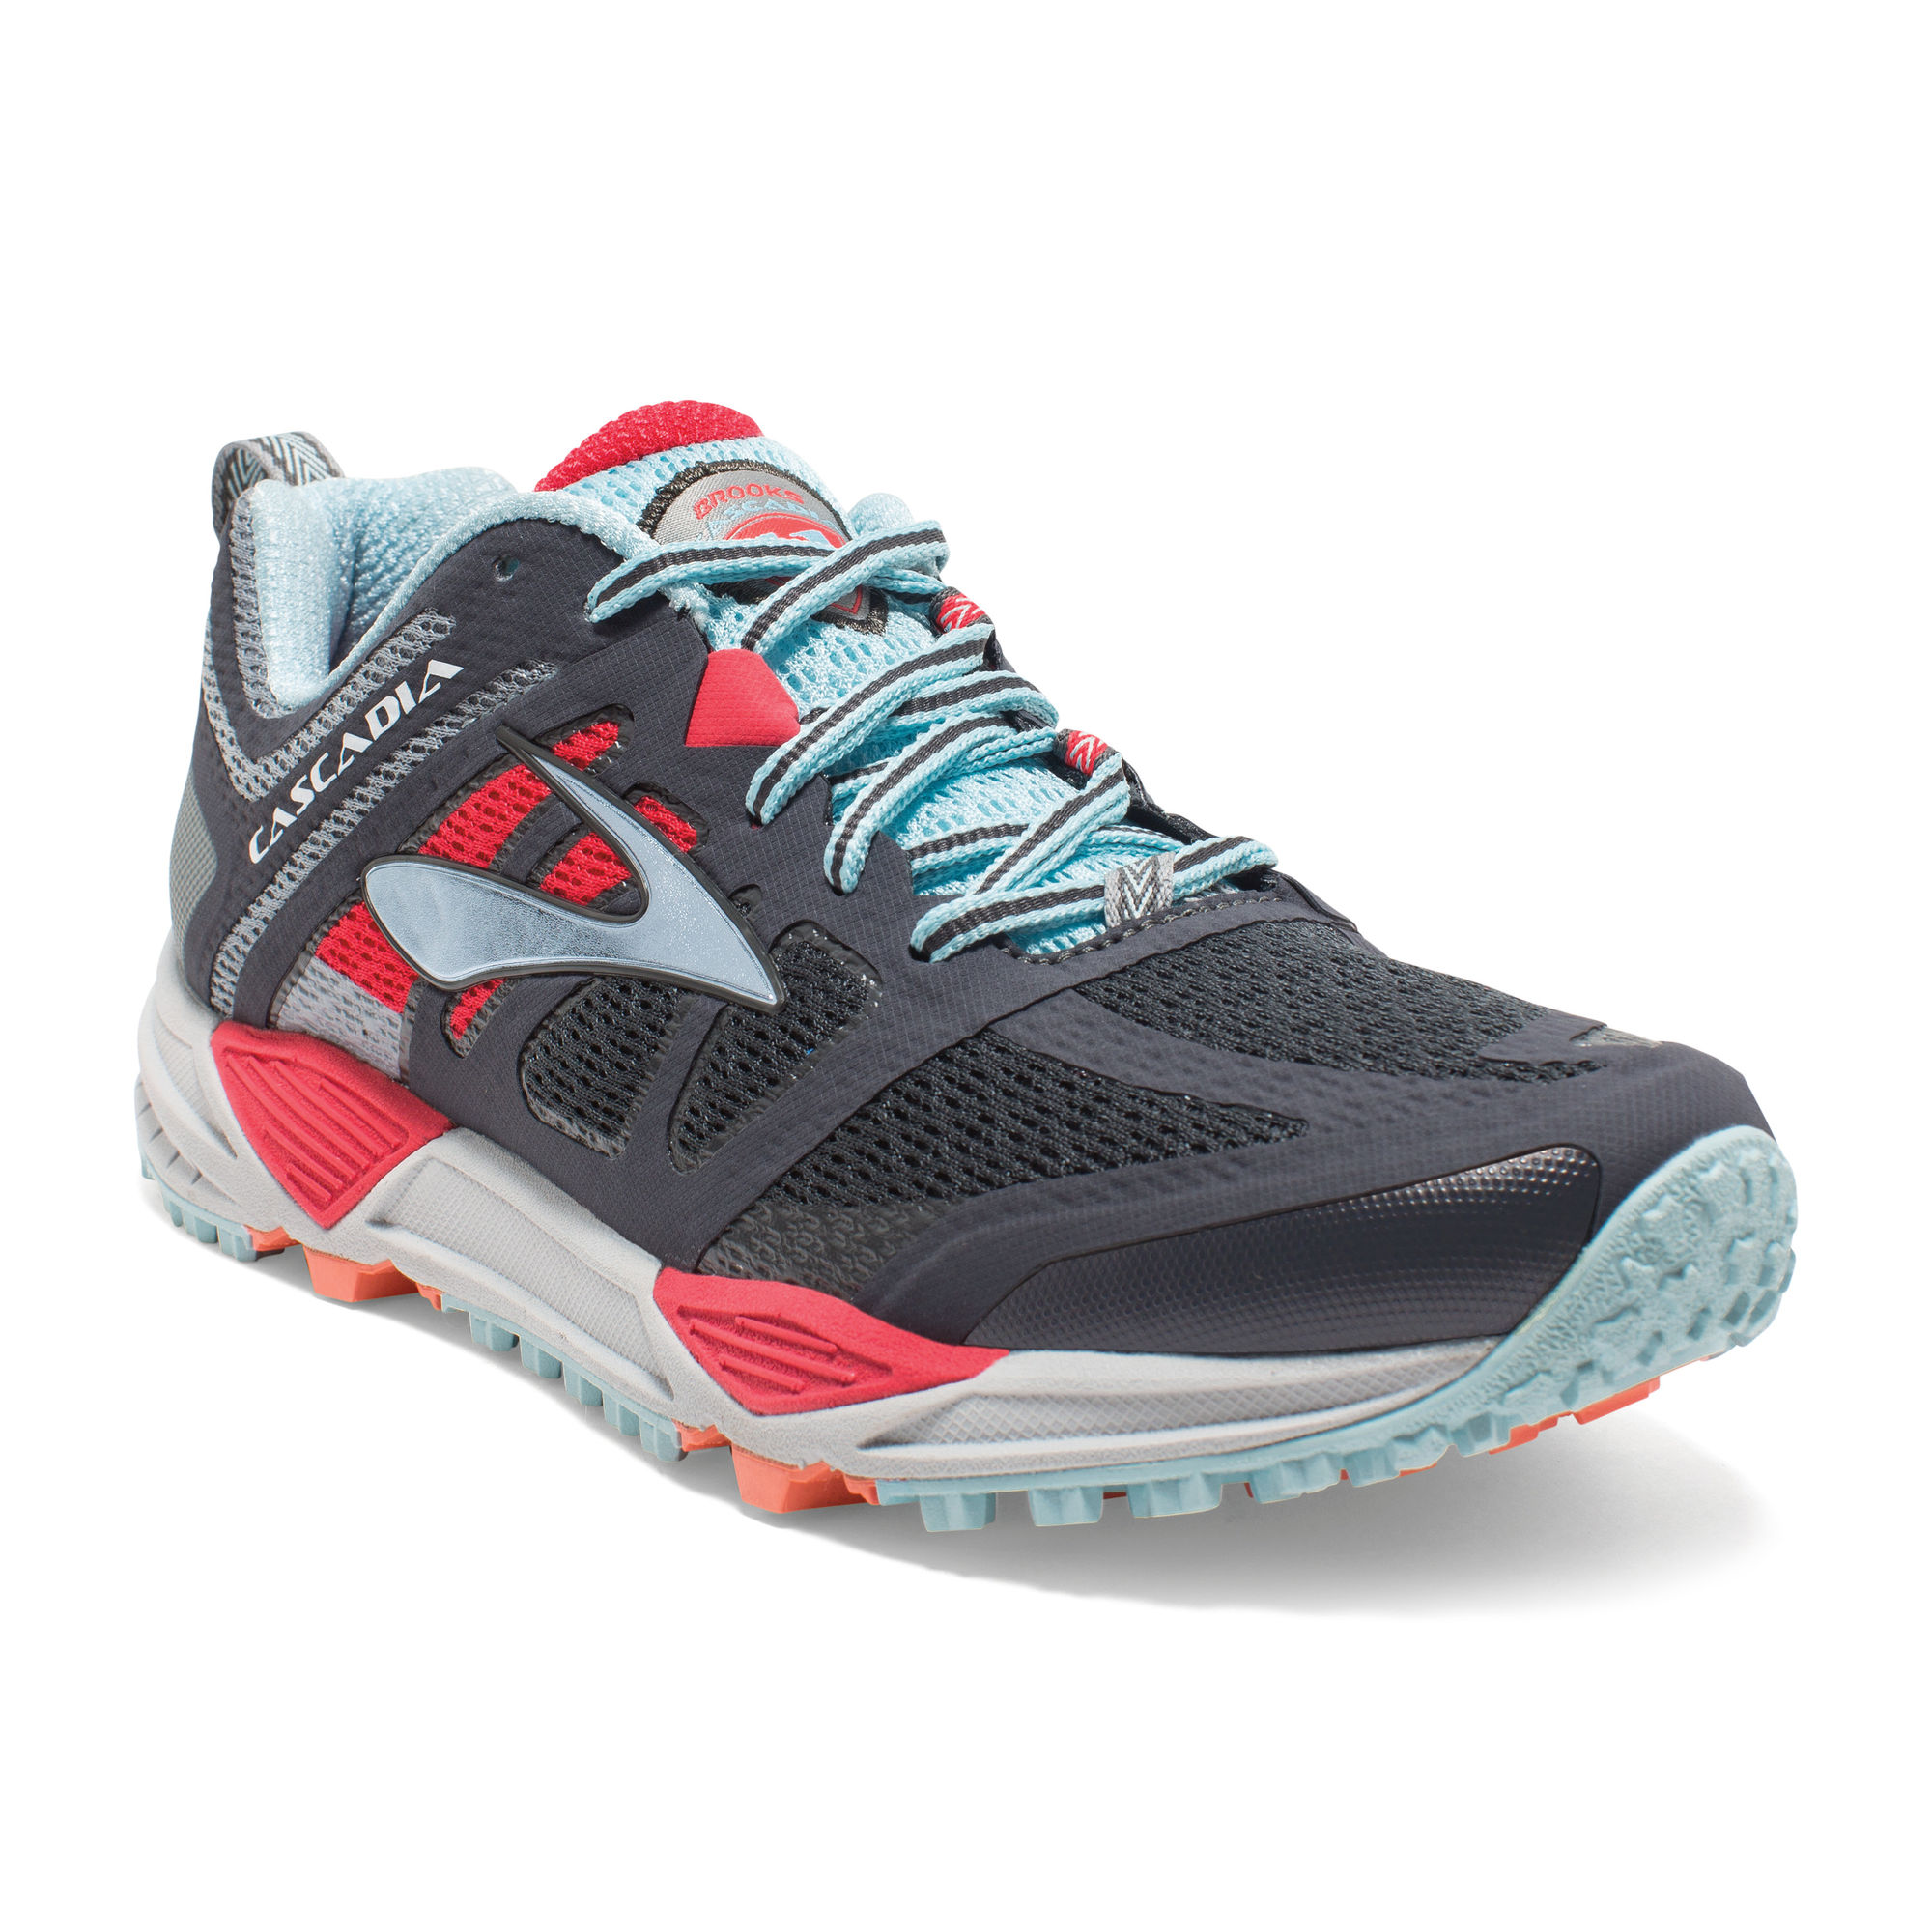 Brooks Lady Cascadia 11 in Anthracite/Hibiscus/Blue